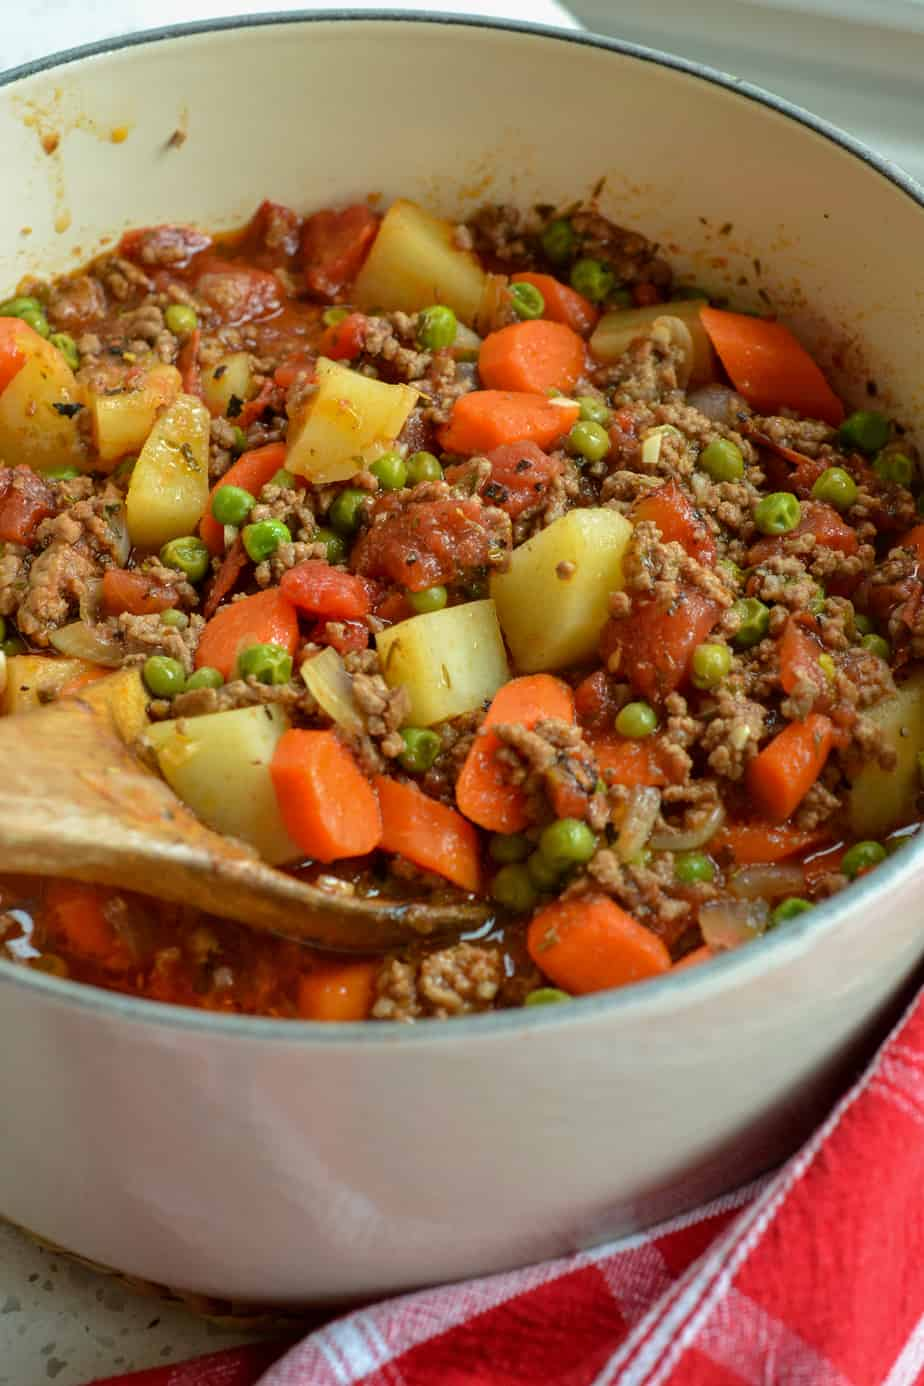 This quick and easy family friendly Hamburger Stew is made in about forty minutes right on the stovetop.